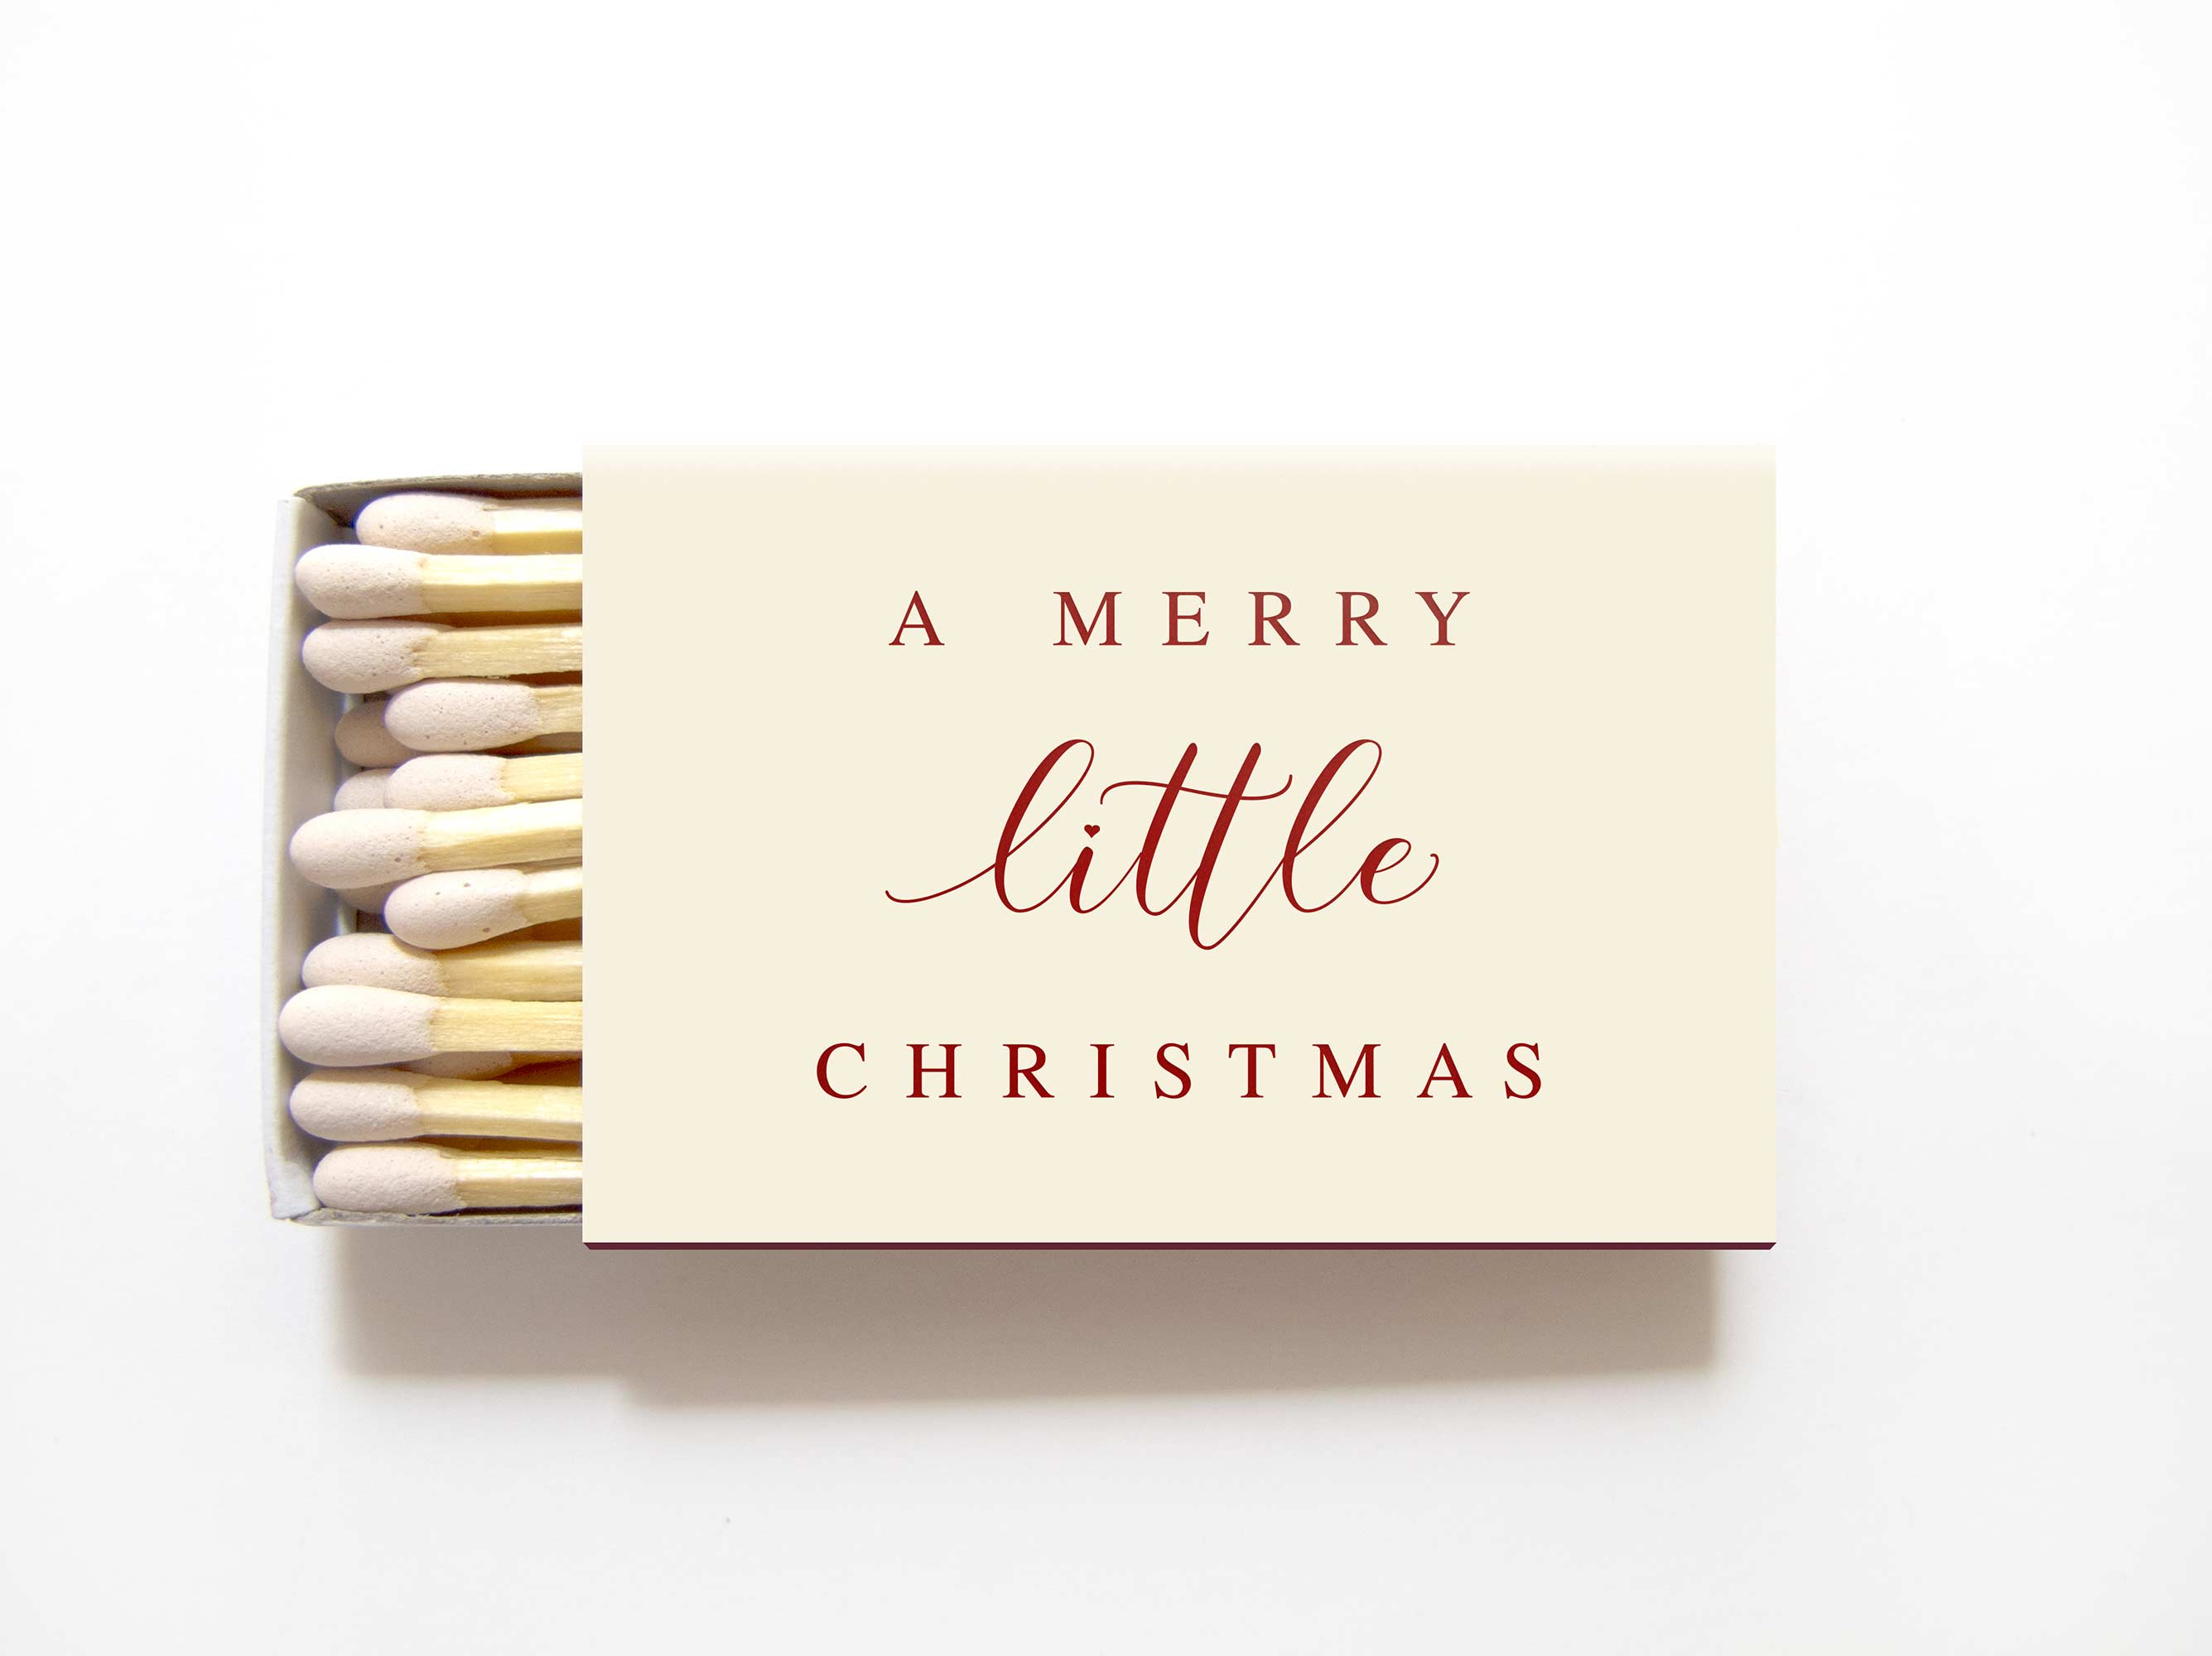 Merry Little Christmas.Merry Little Christmas Matchboxes Personalized Holiday Matches